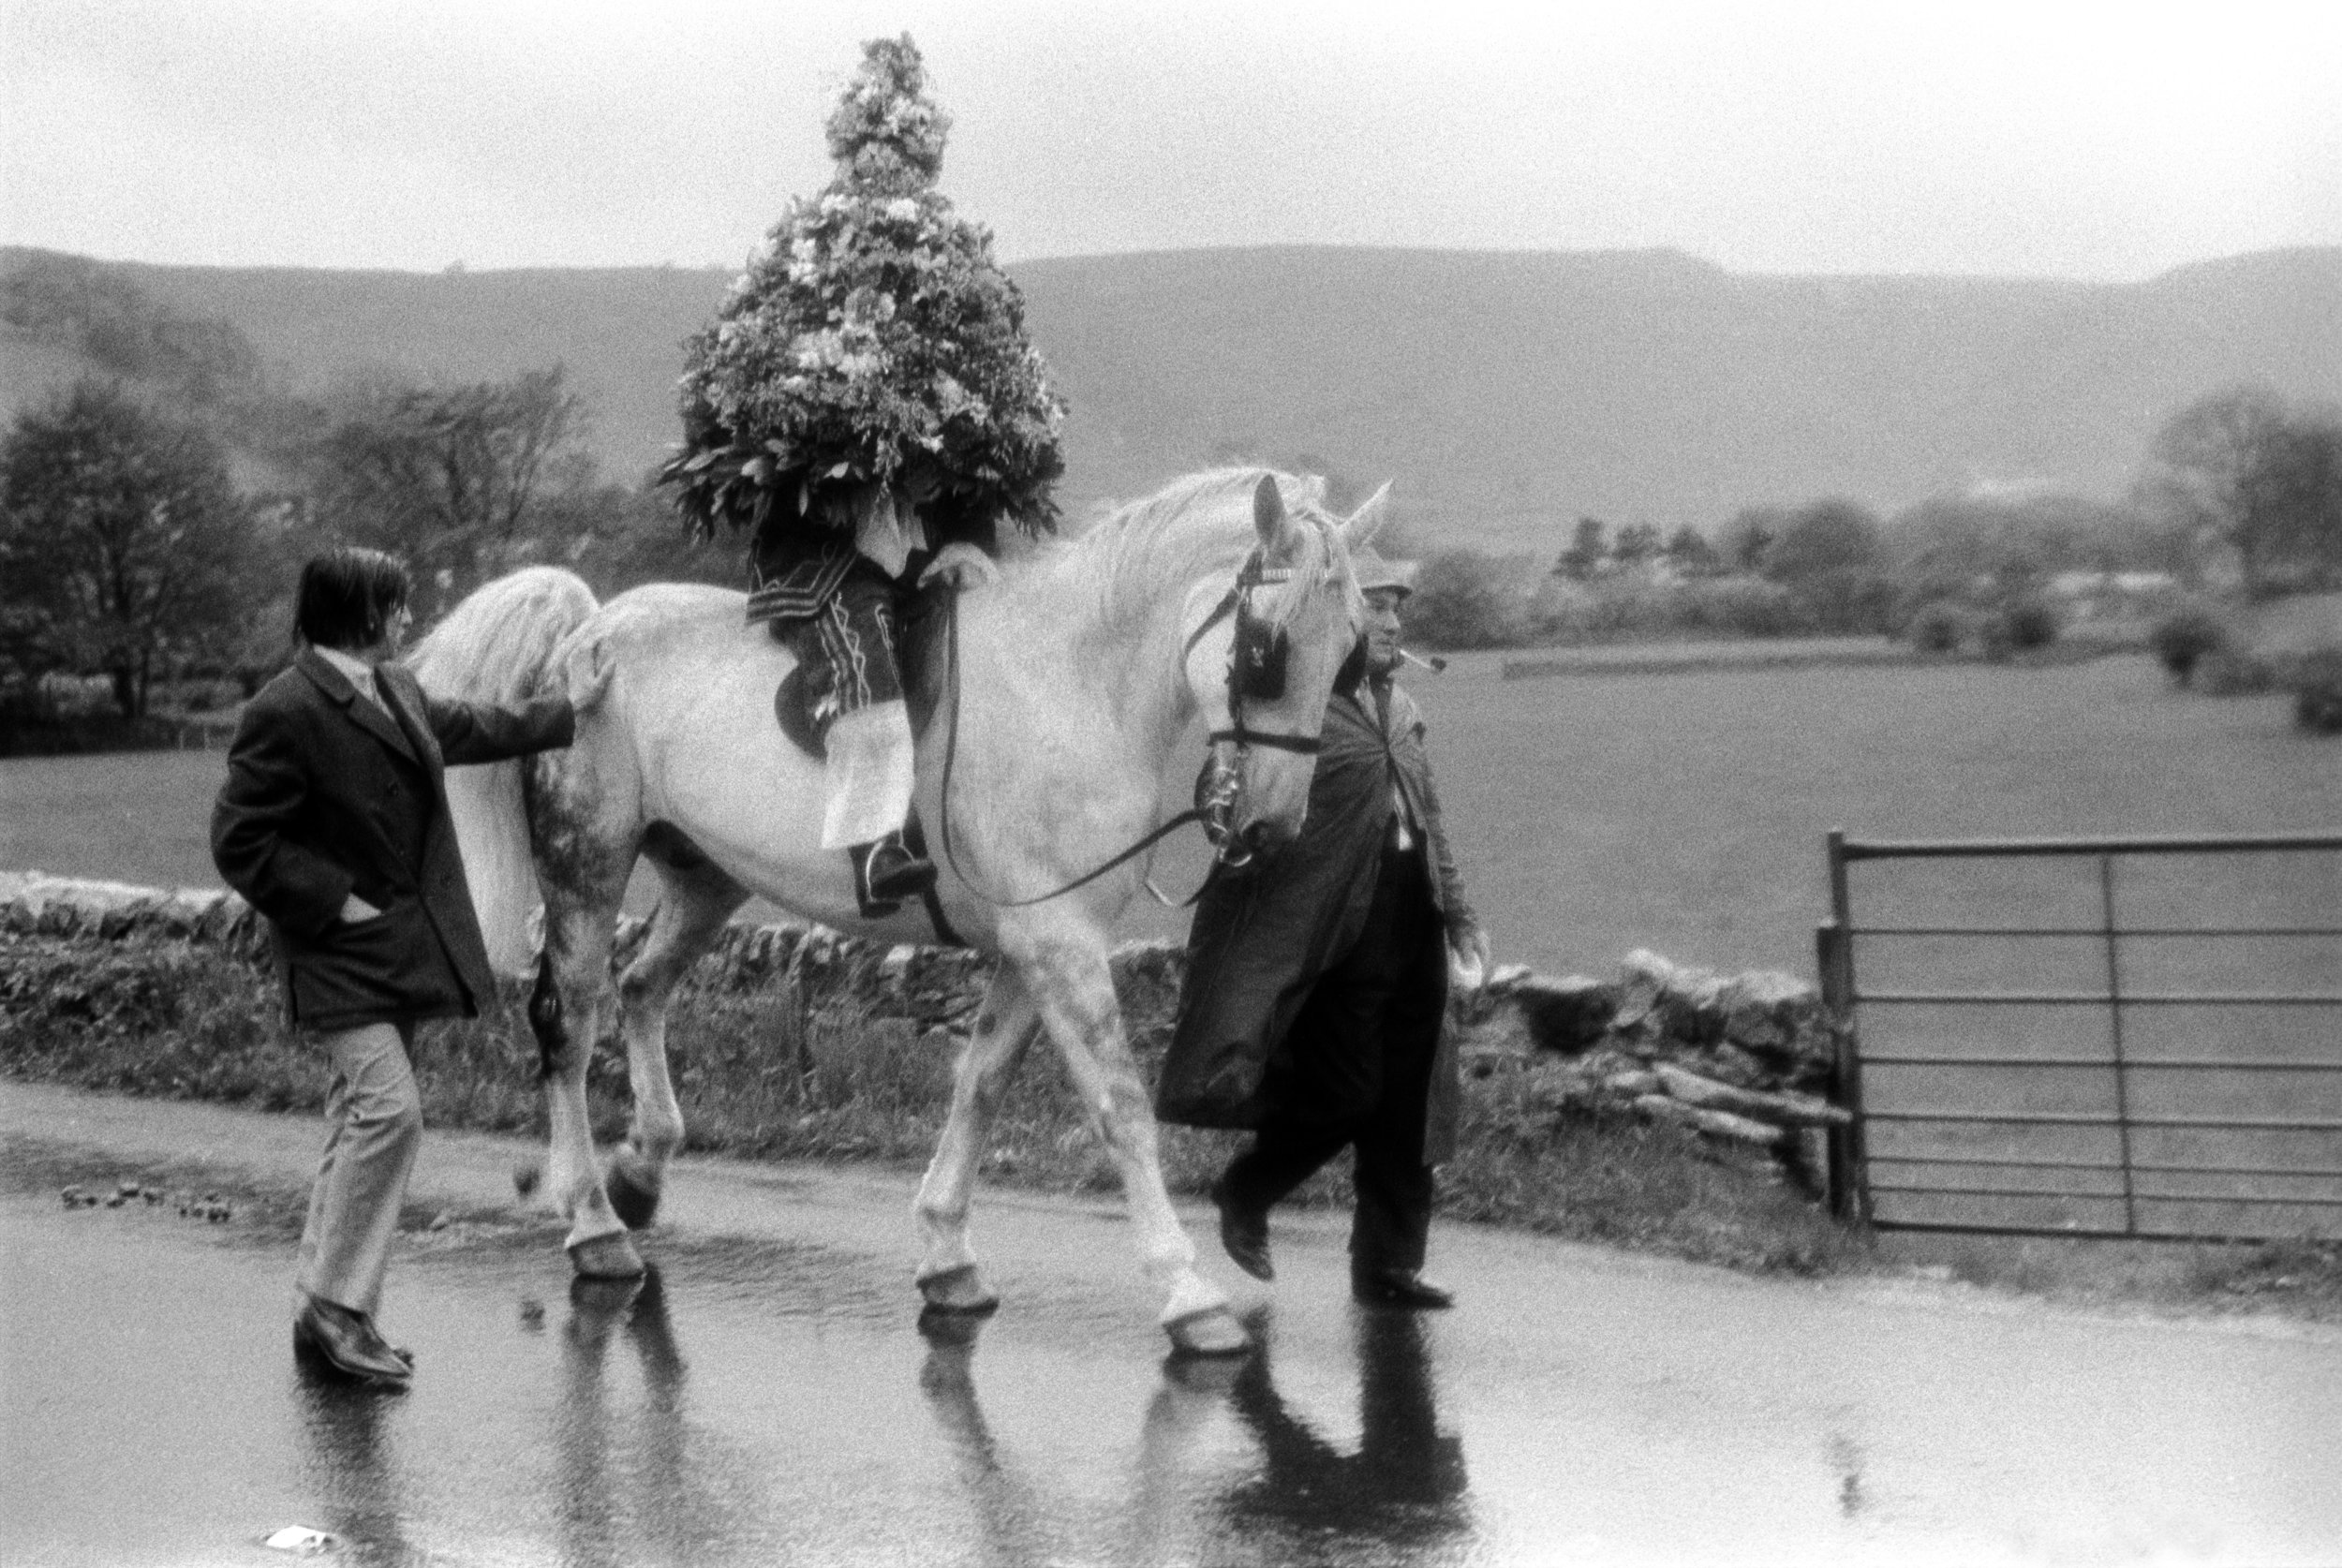 Copy of The King on horse back. Castleton Garland Day, Castleton Derbyshire England. May 29th 1972